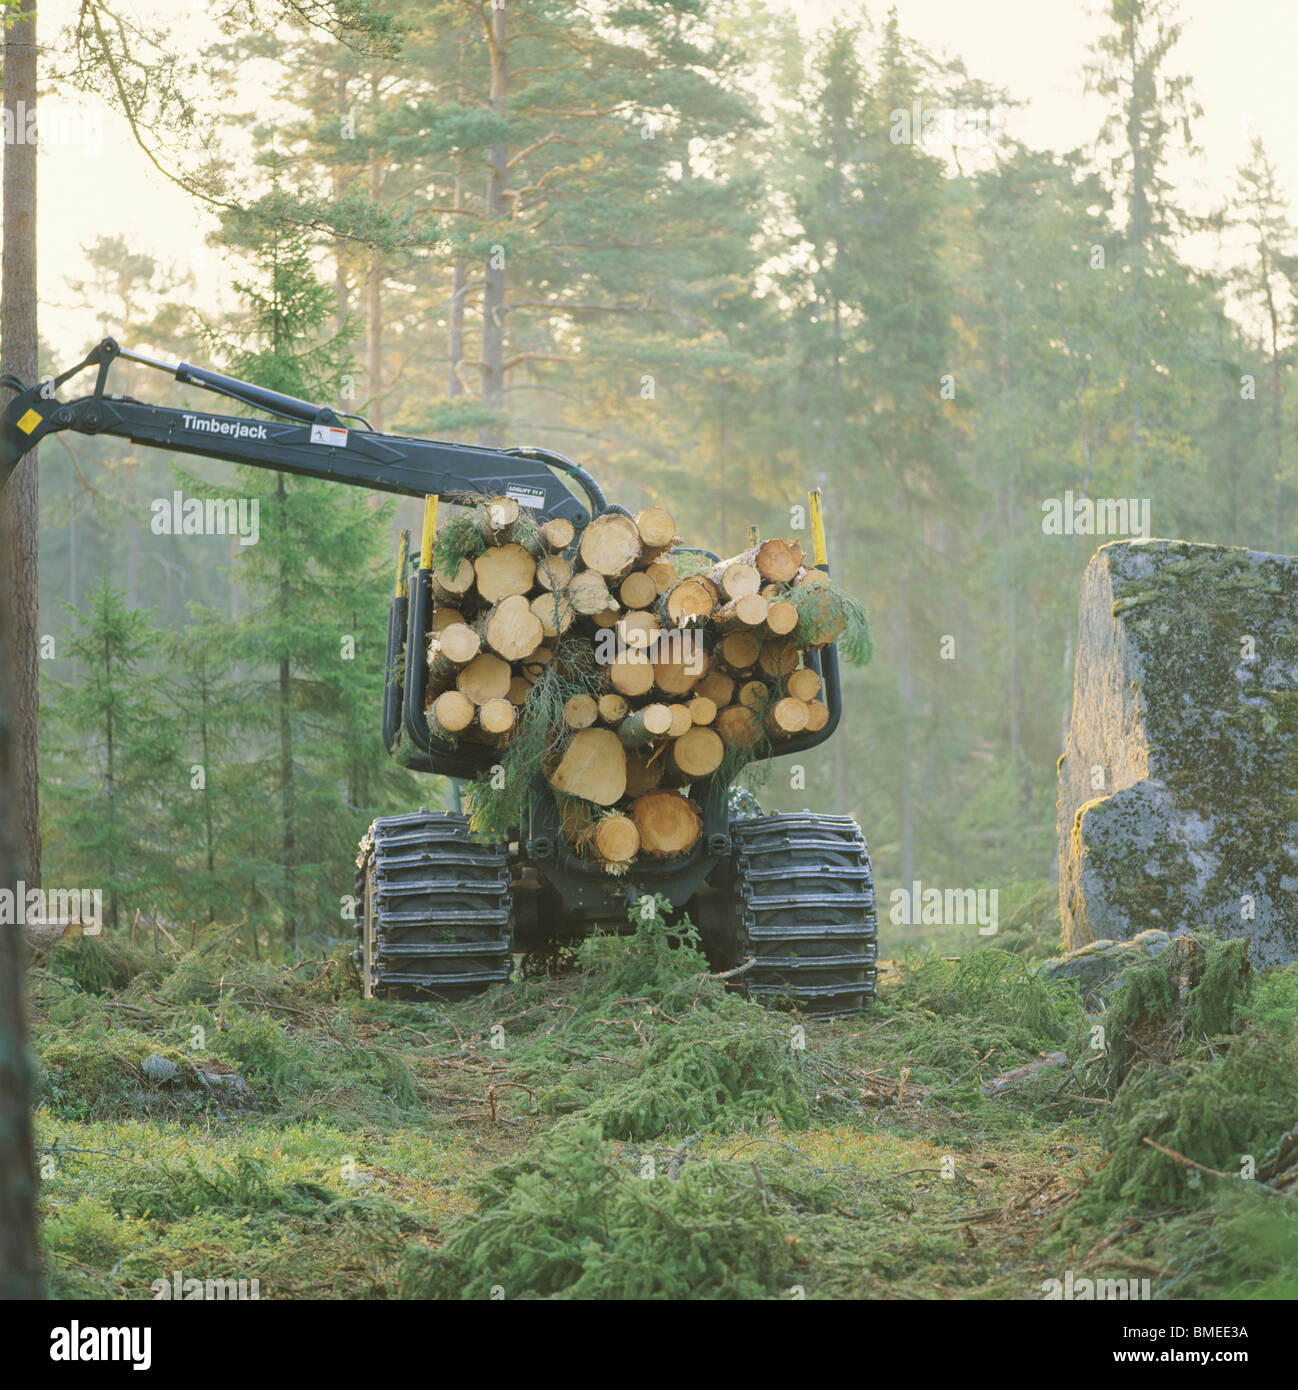 Mobile crane carrying logs in forest - Stock Image